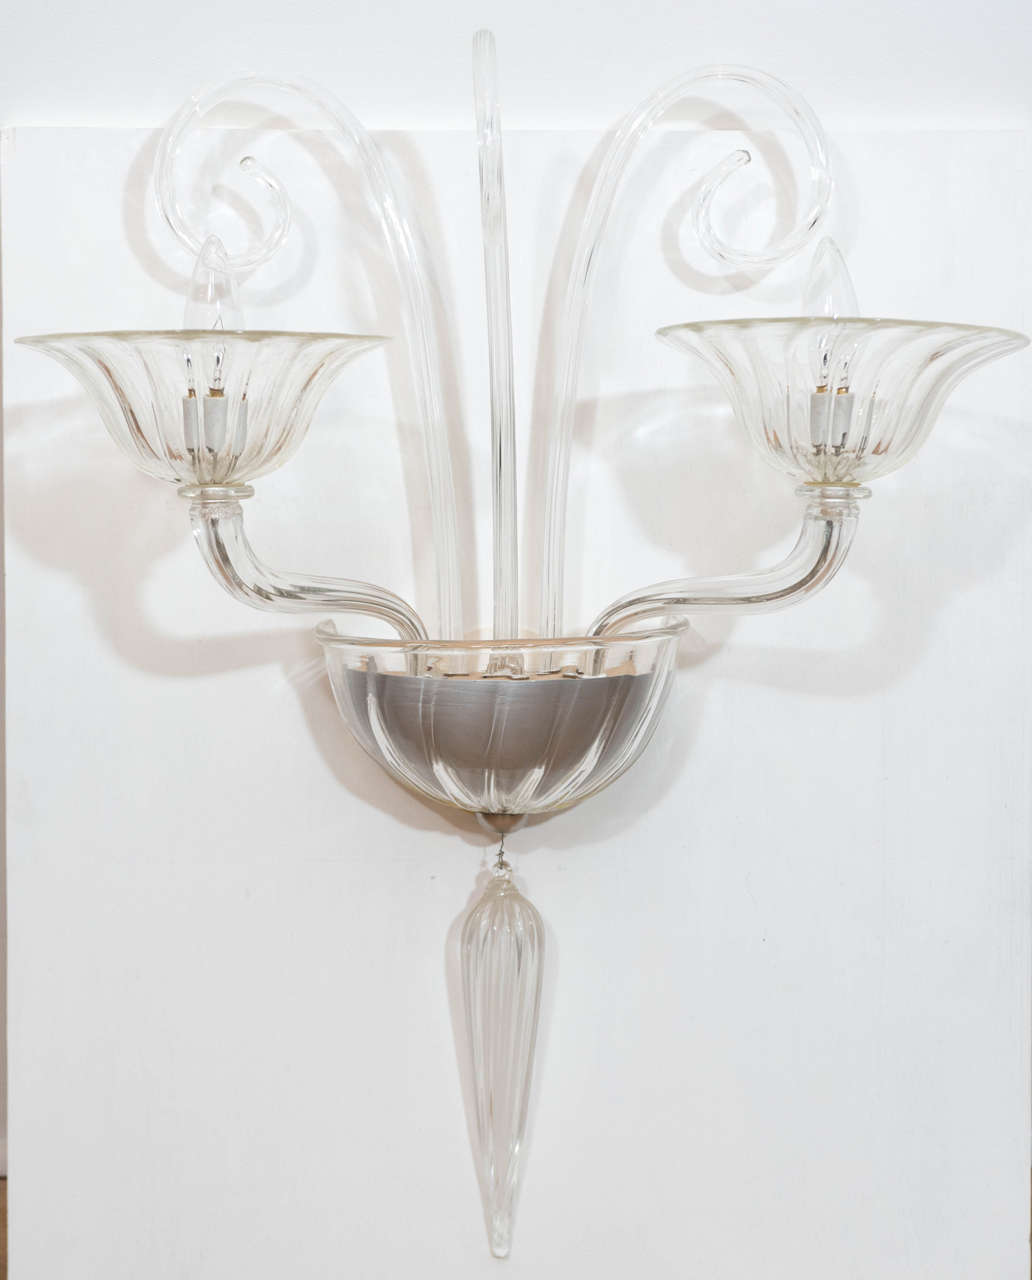 Pair of Murano Glass Wall Sconces Attributed to Mazzega 2